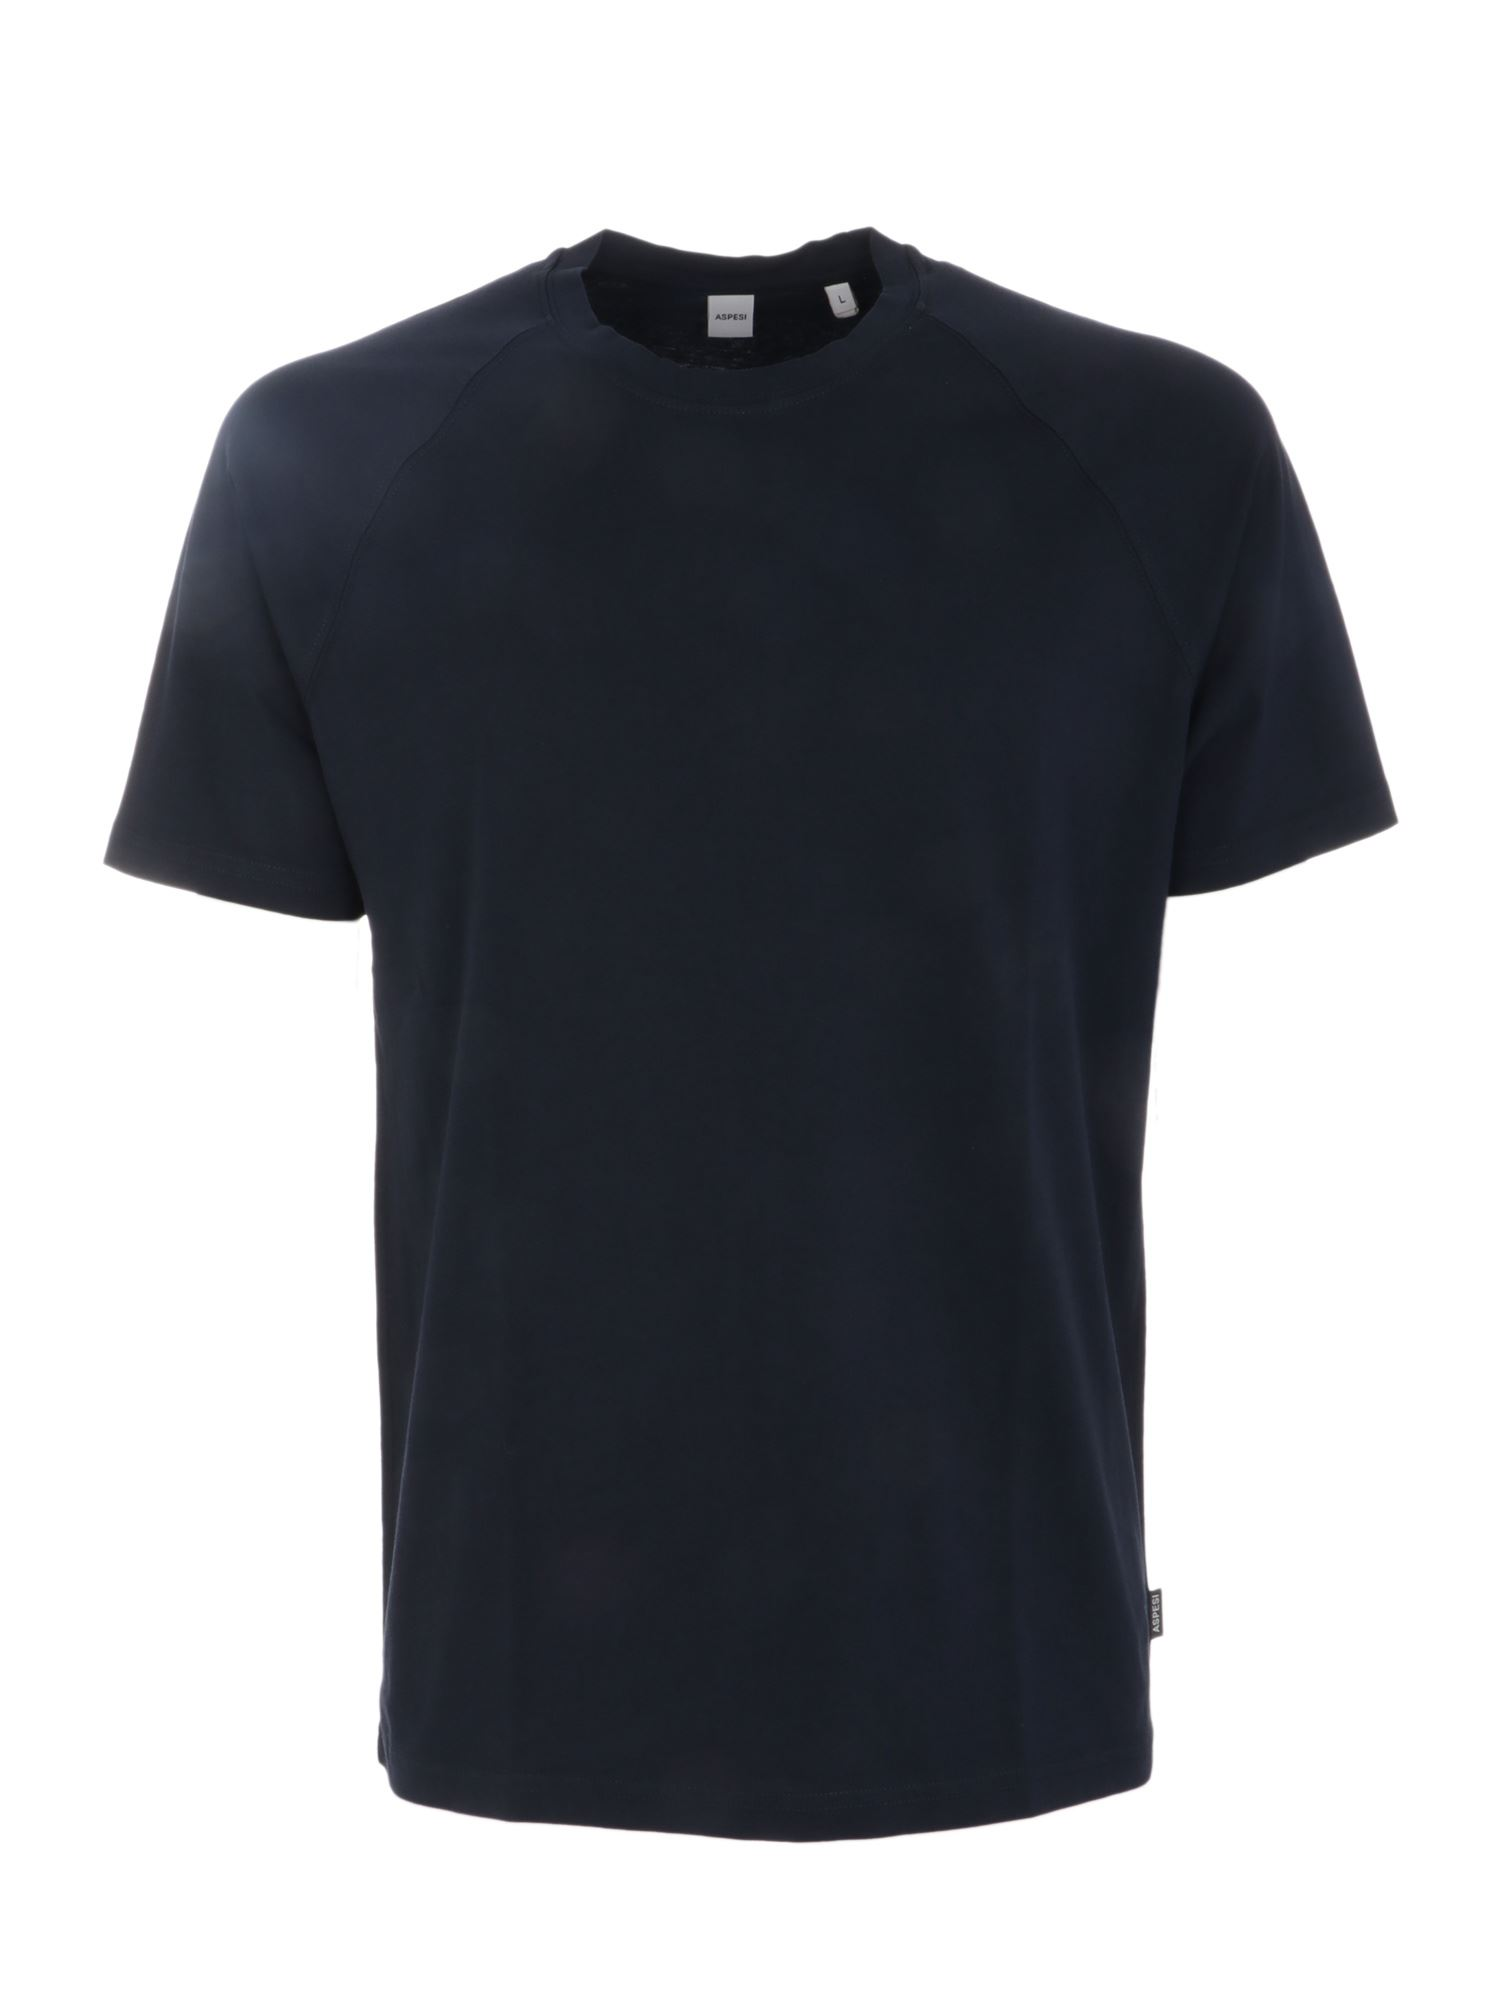 Aspesi LOGO LABEL T-SHIRT IN BLUE